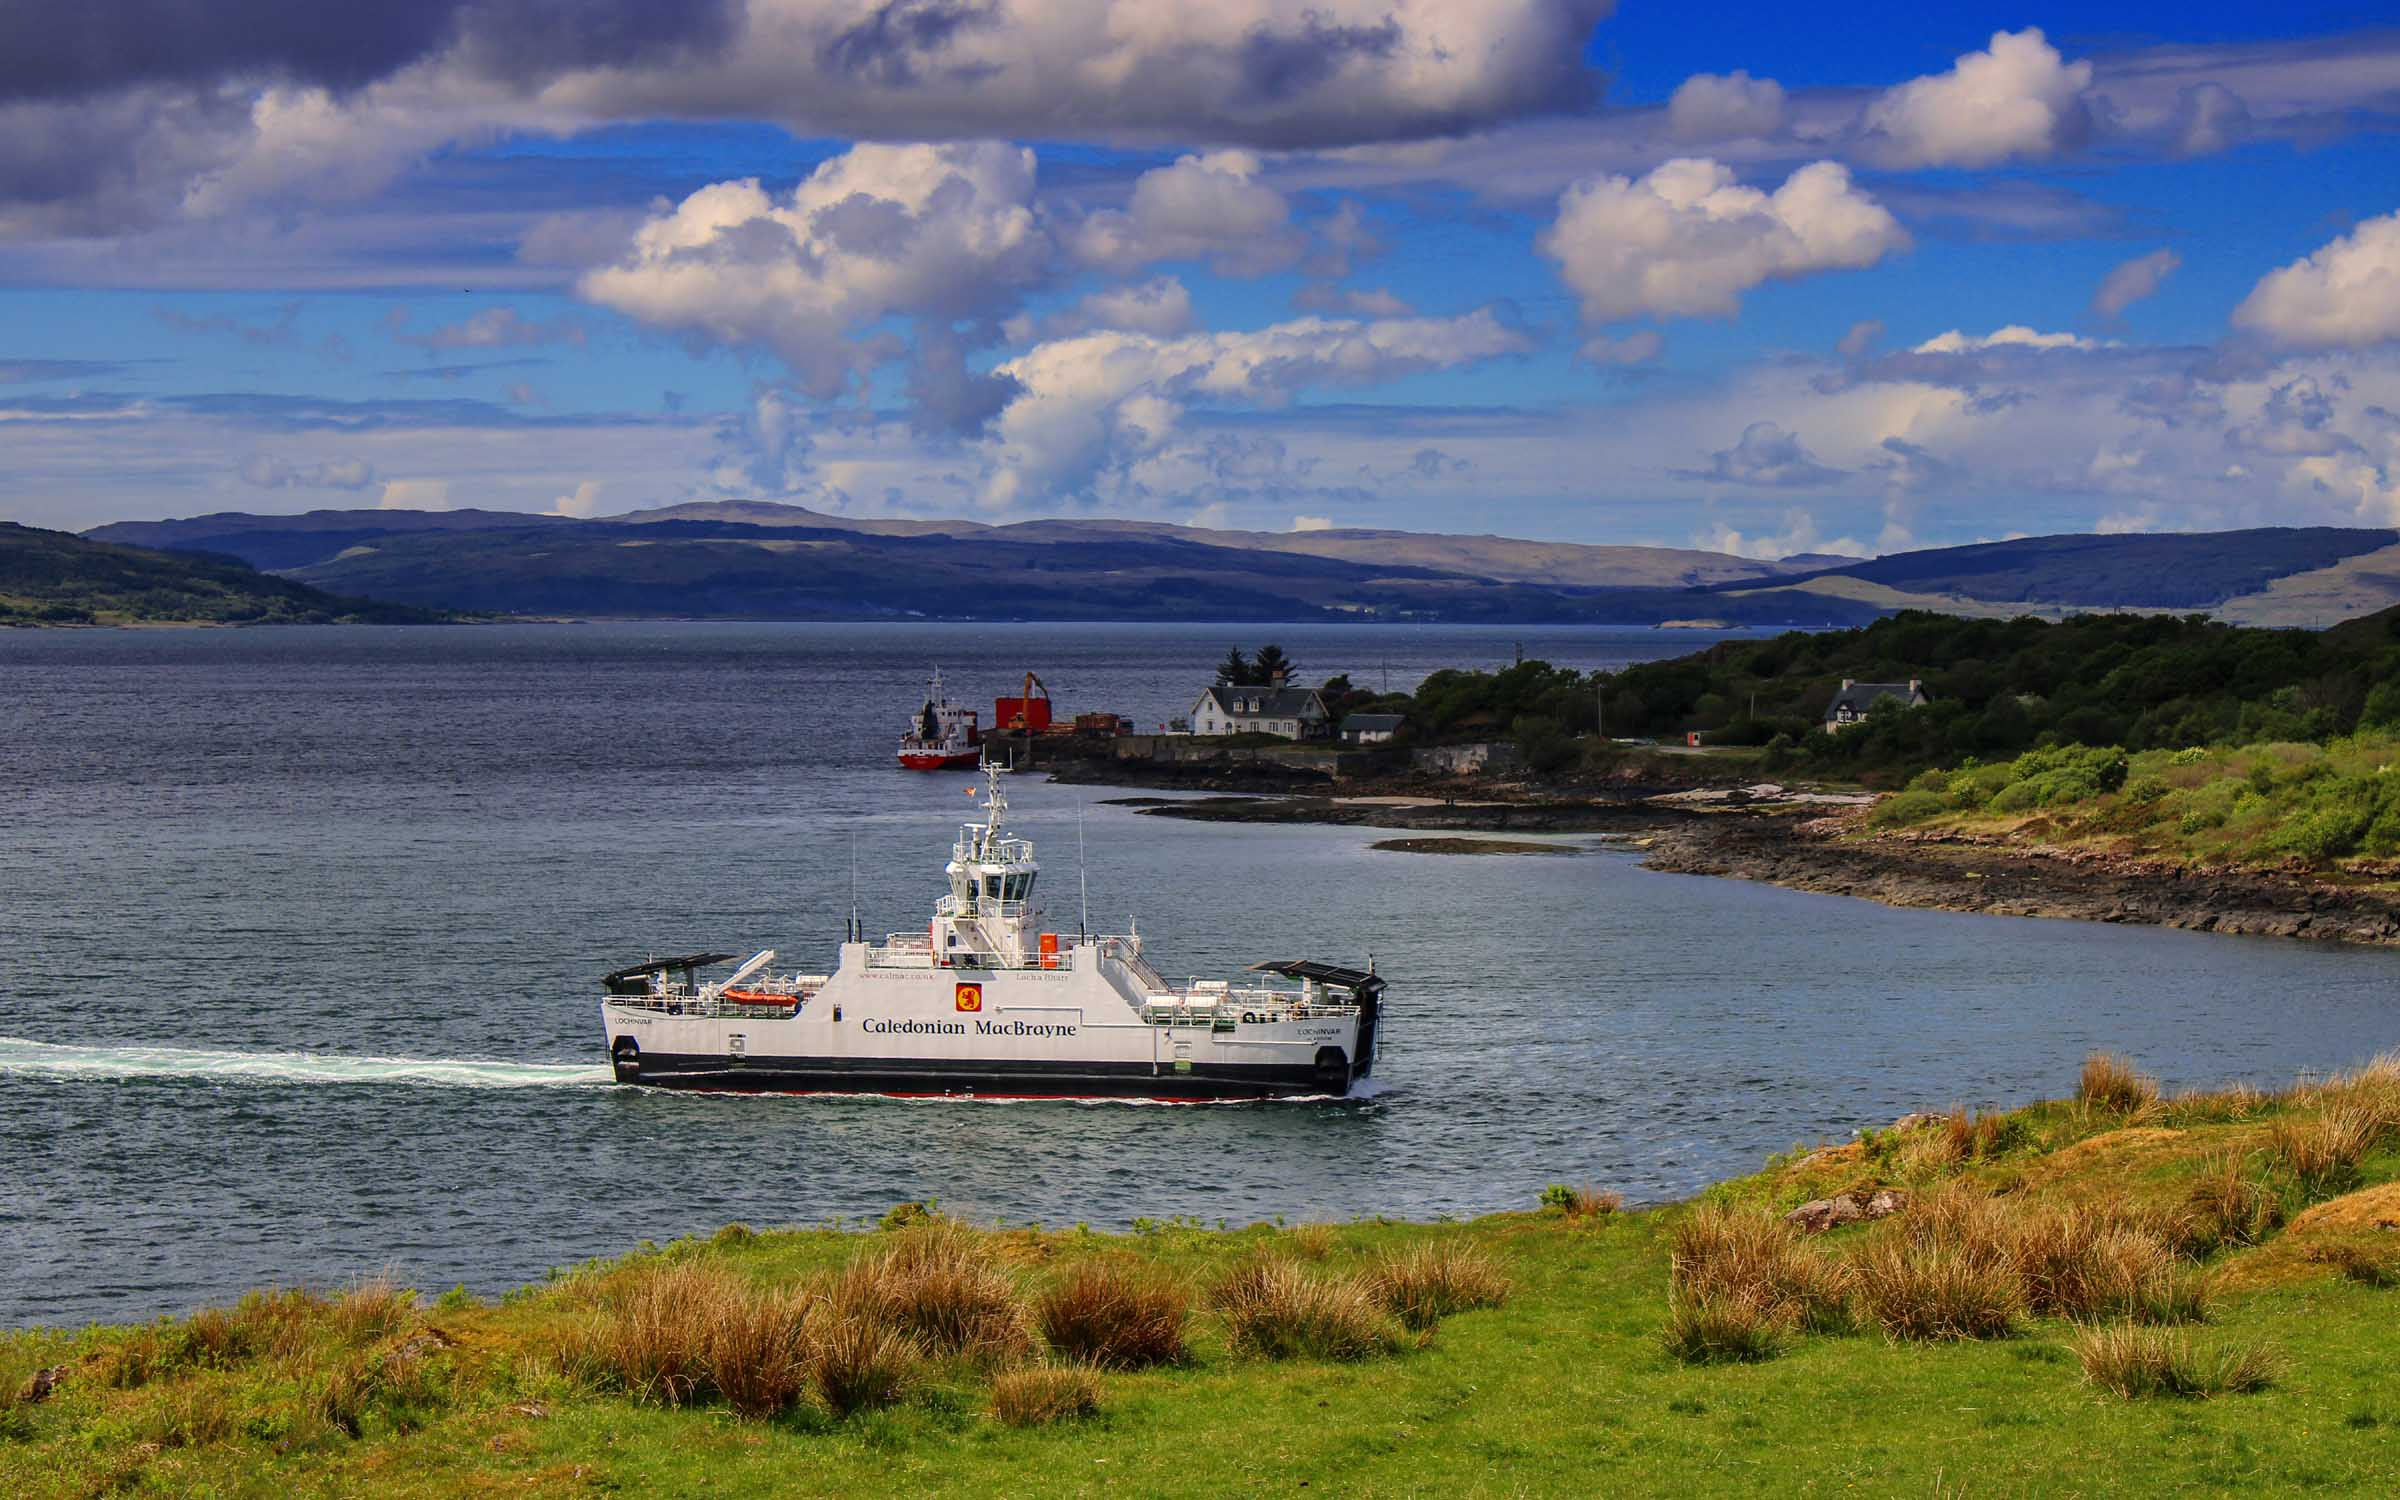 Lochinvar crossing from Fishnish to Lochaline (Photo: SoC Crew)